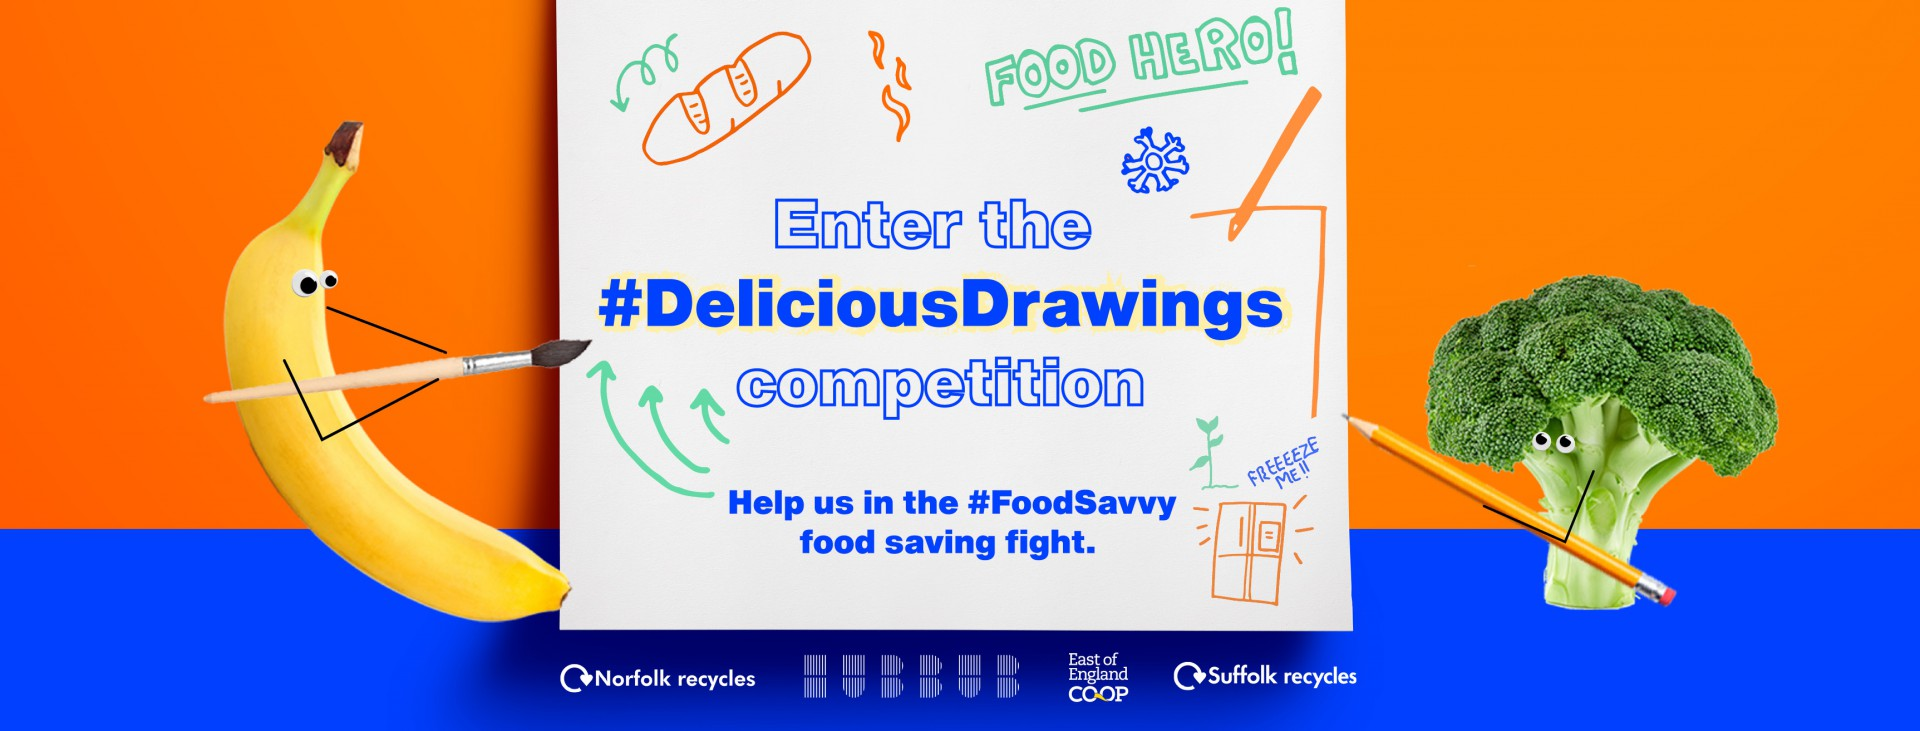 Enter #DeliciousDrowing Competition. Help us in the #FoodSavvy food saving fight.